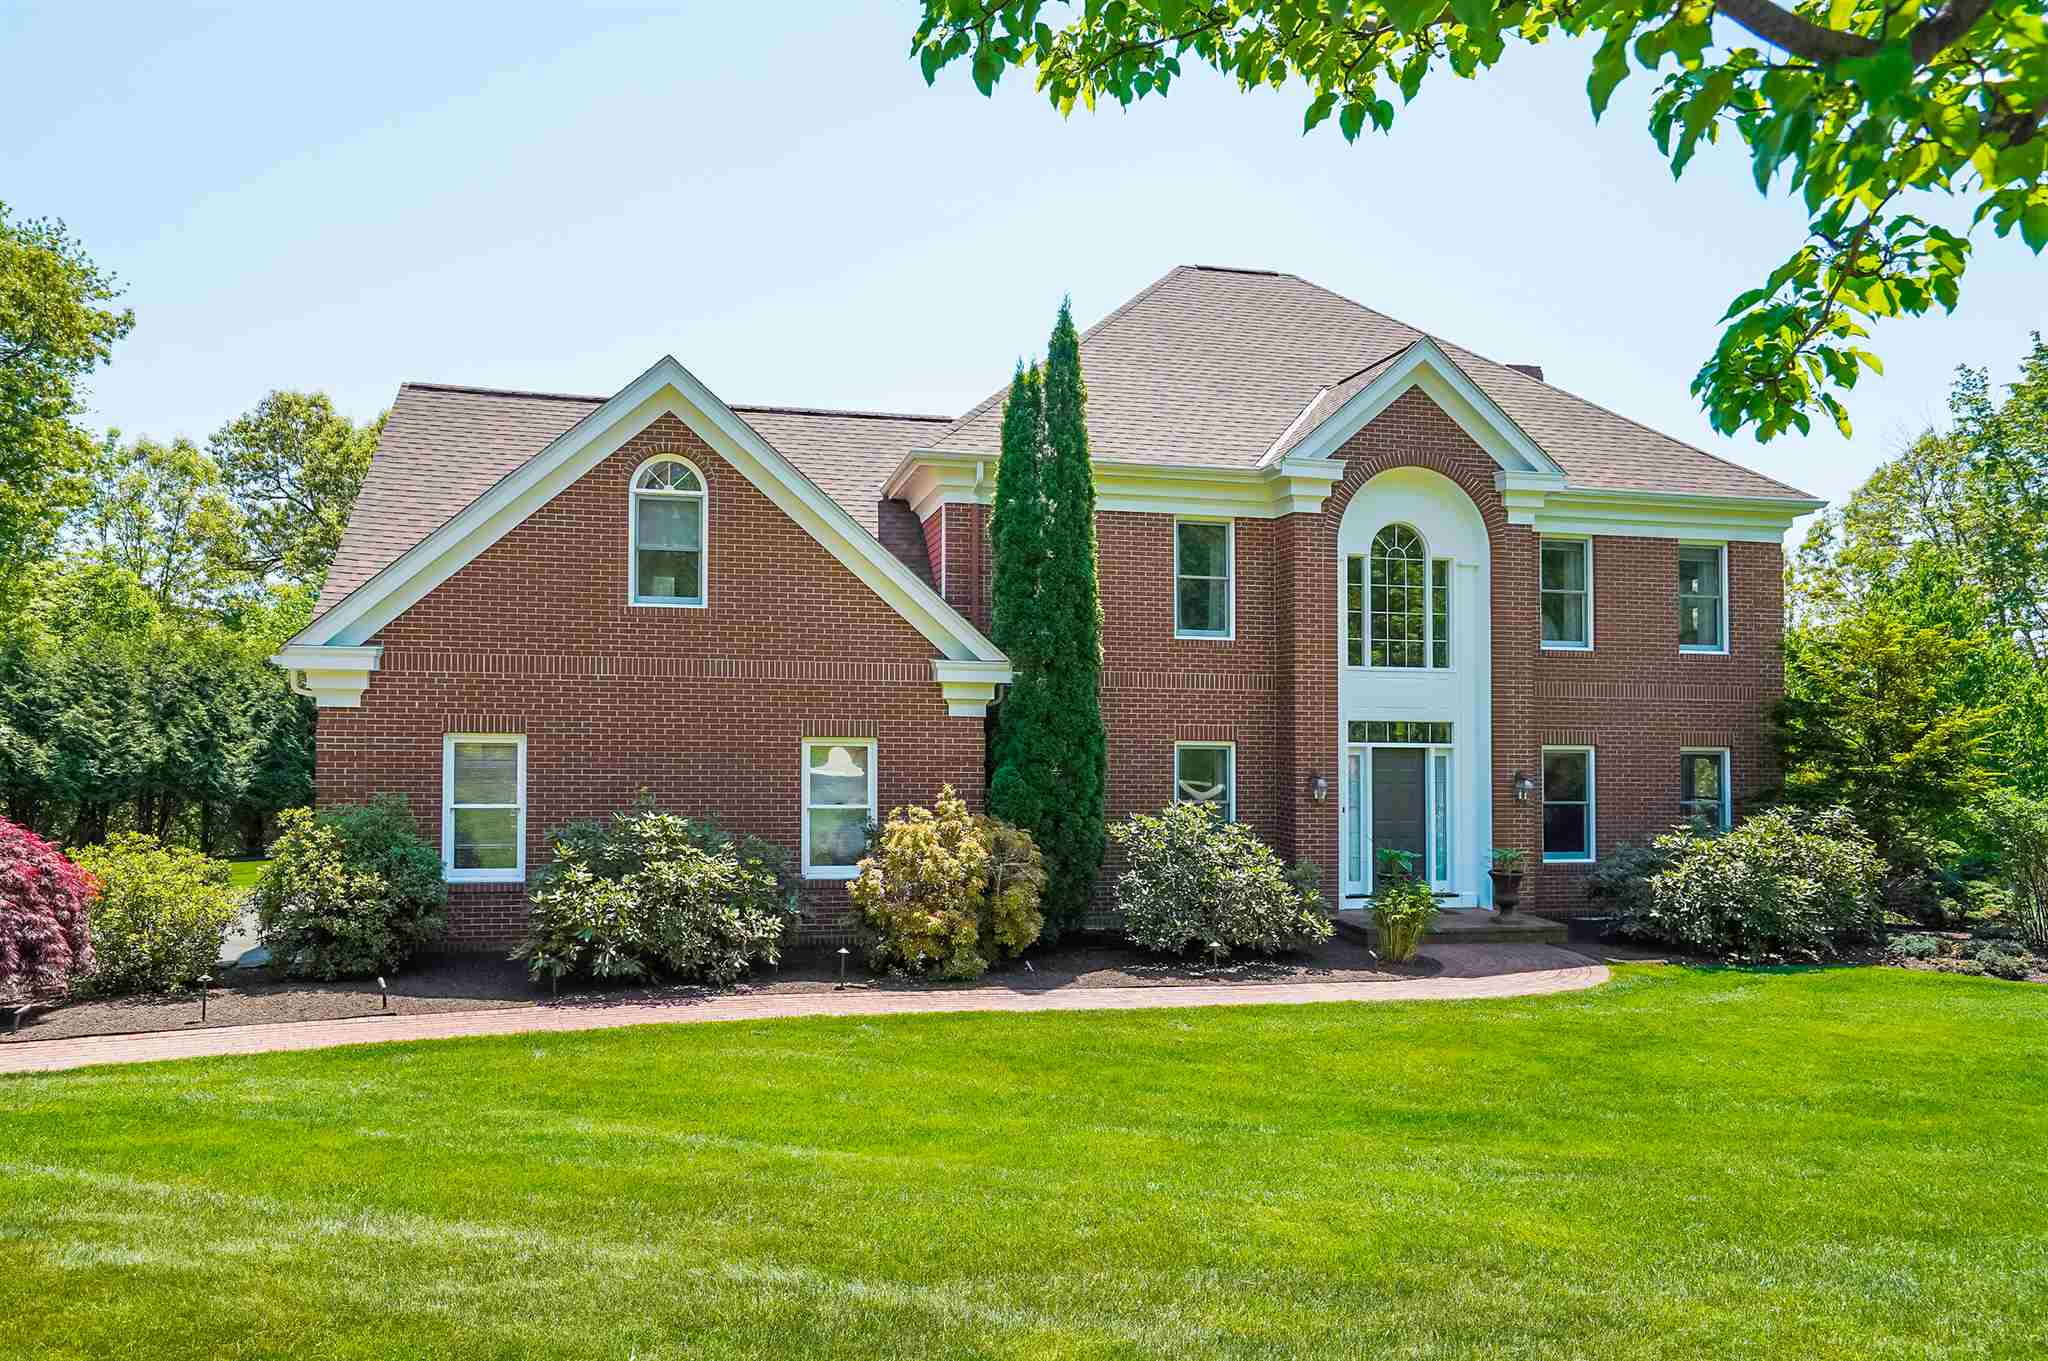 40 Olde English Road, Bedford, NH 03110